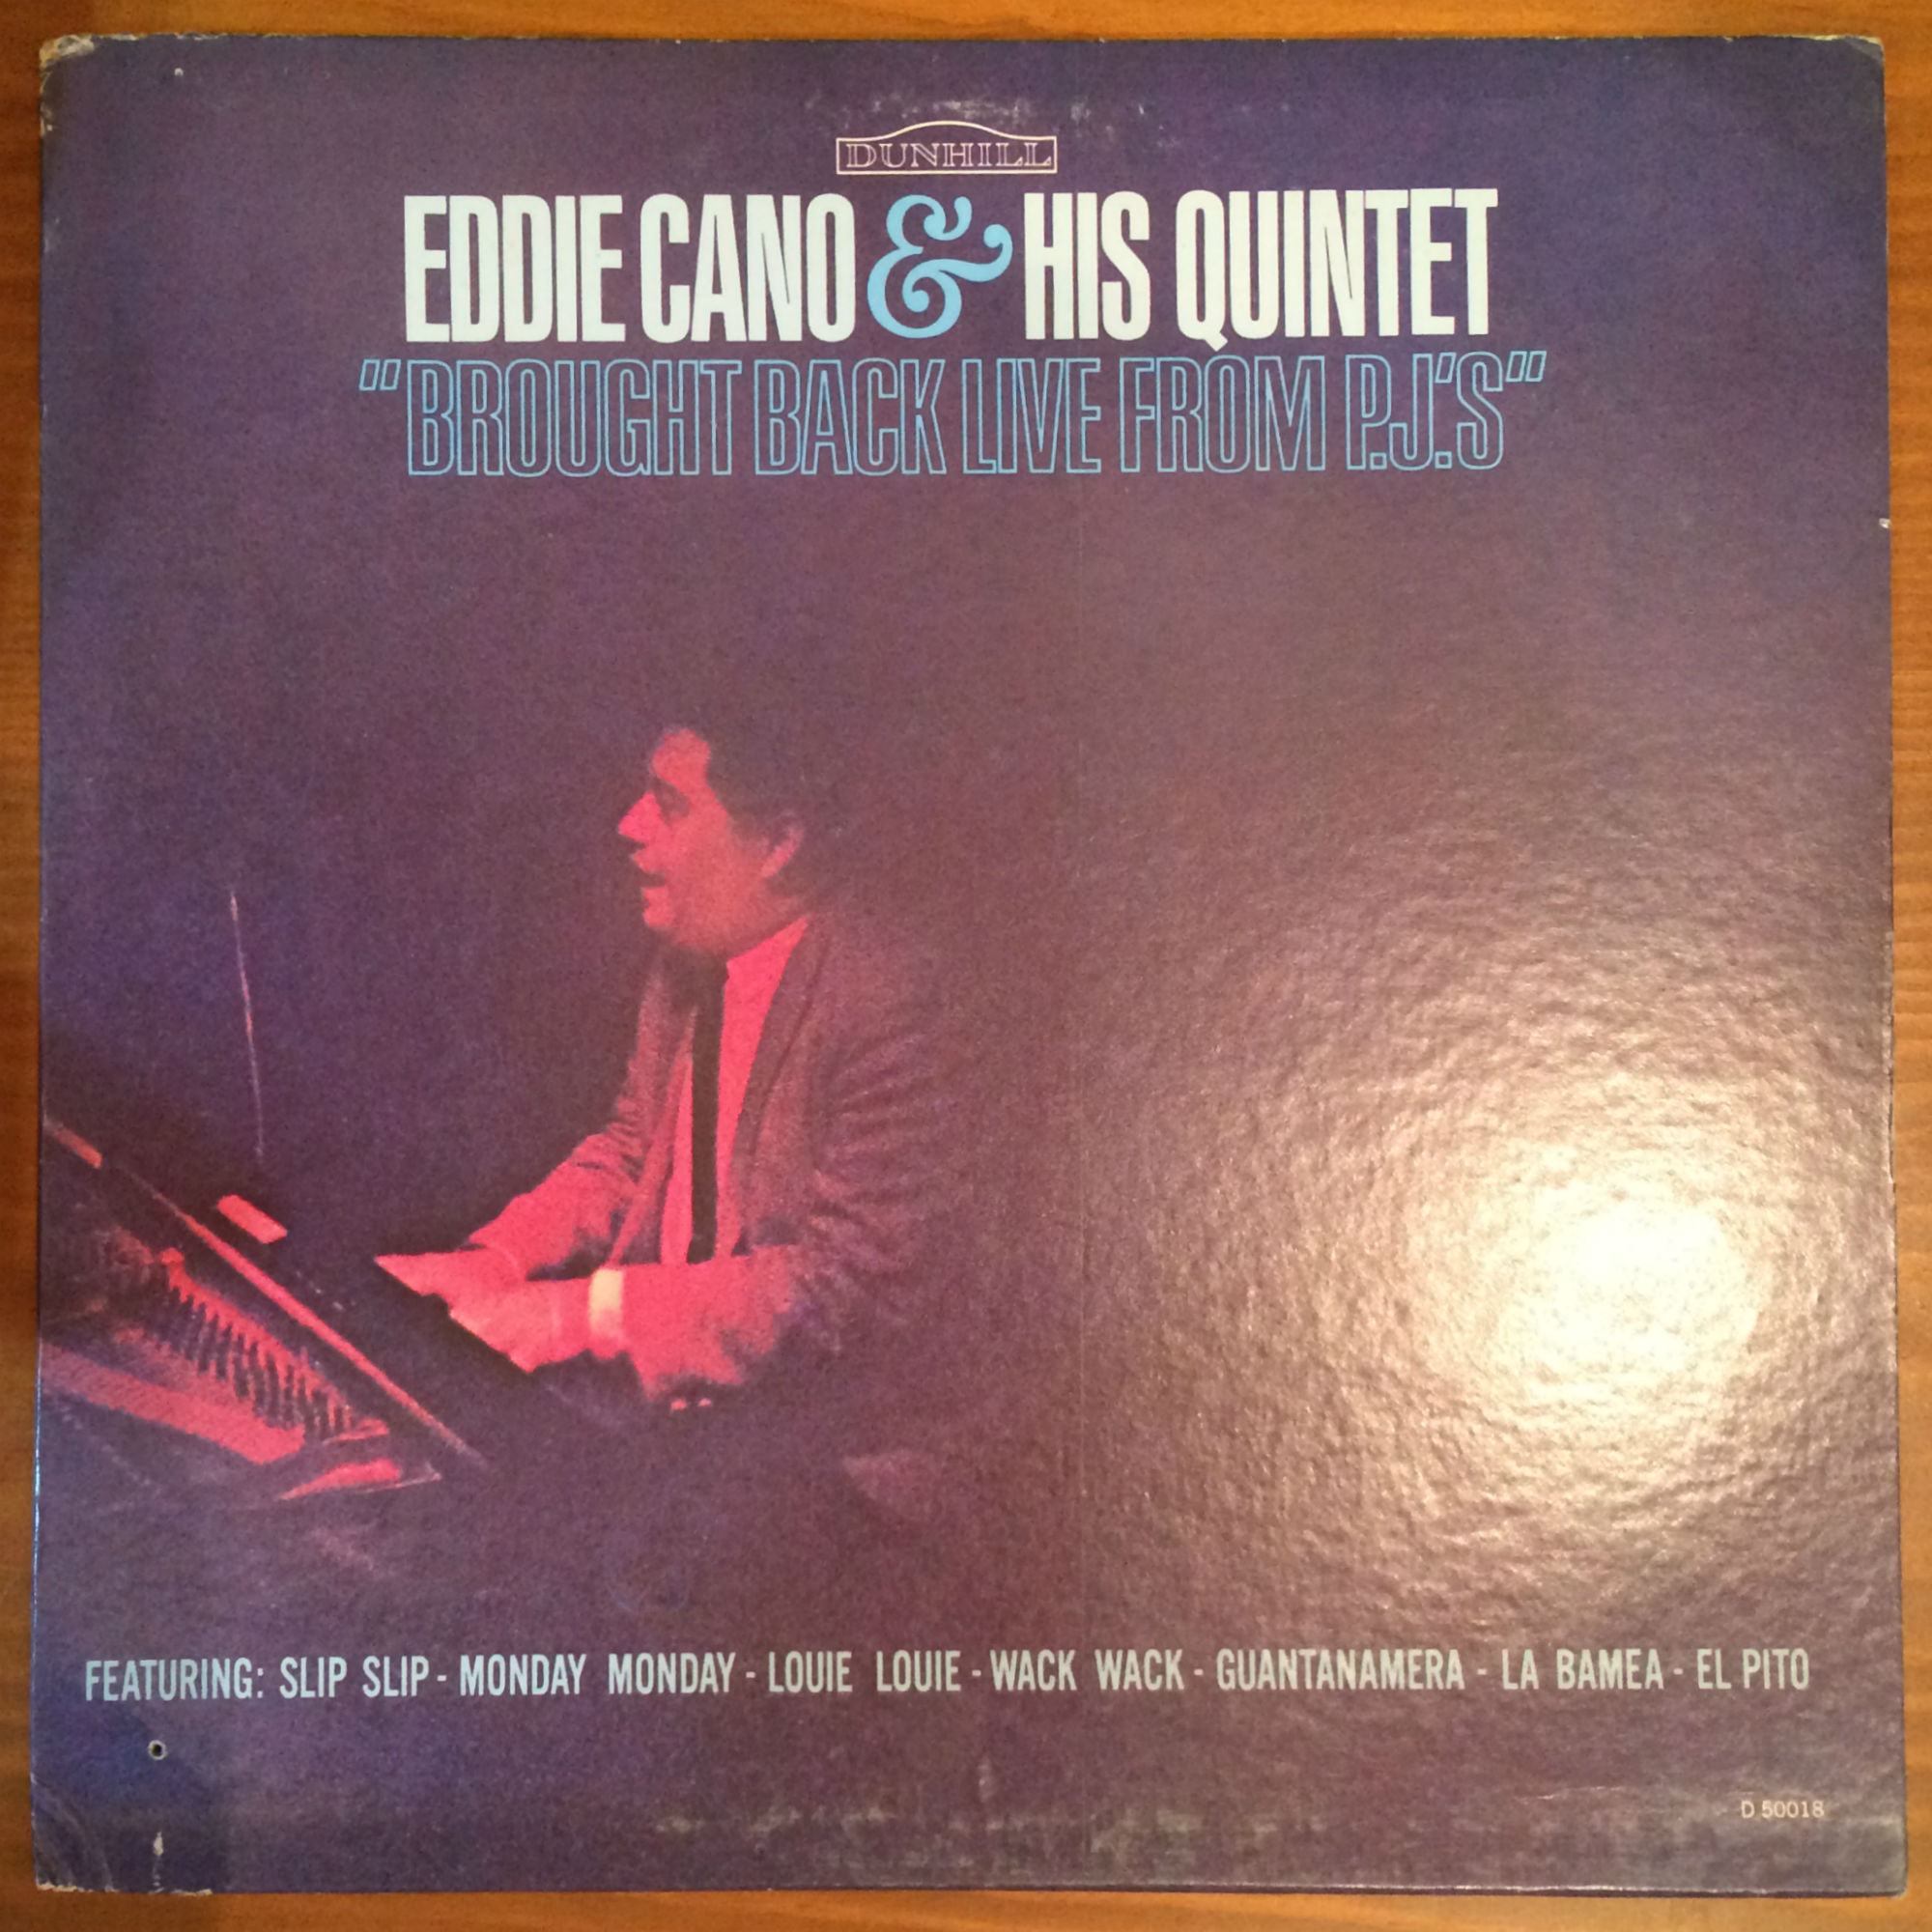 ●EDDIE CANO & HIS QUINTET / BROUGHT BACK LIVE FROM PJ'S